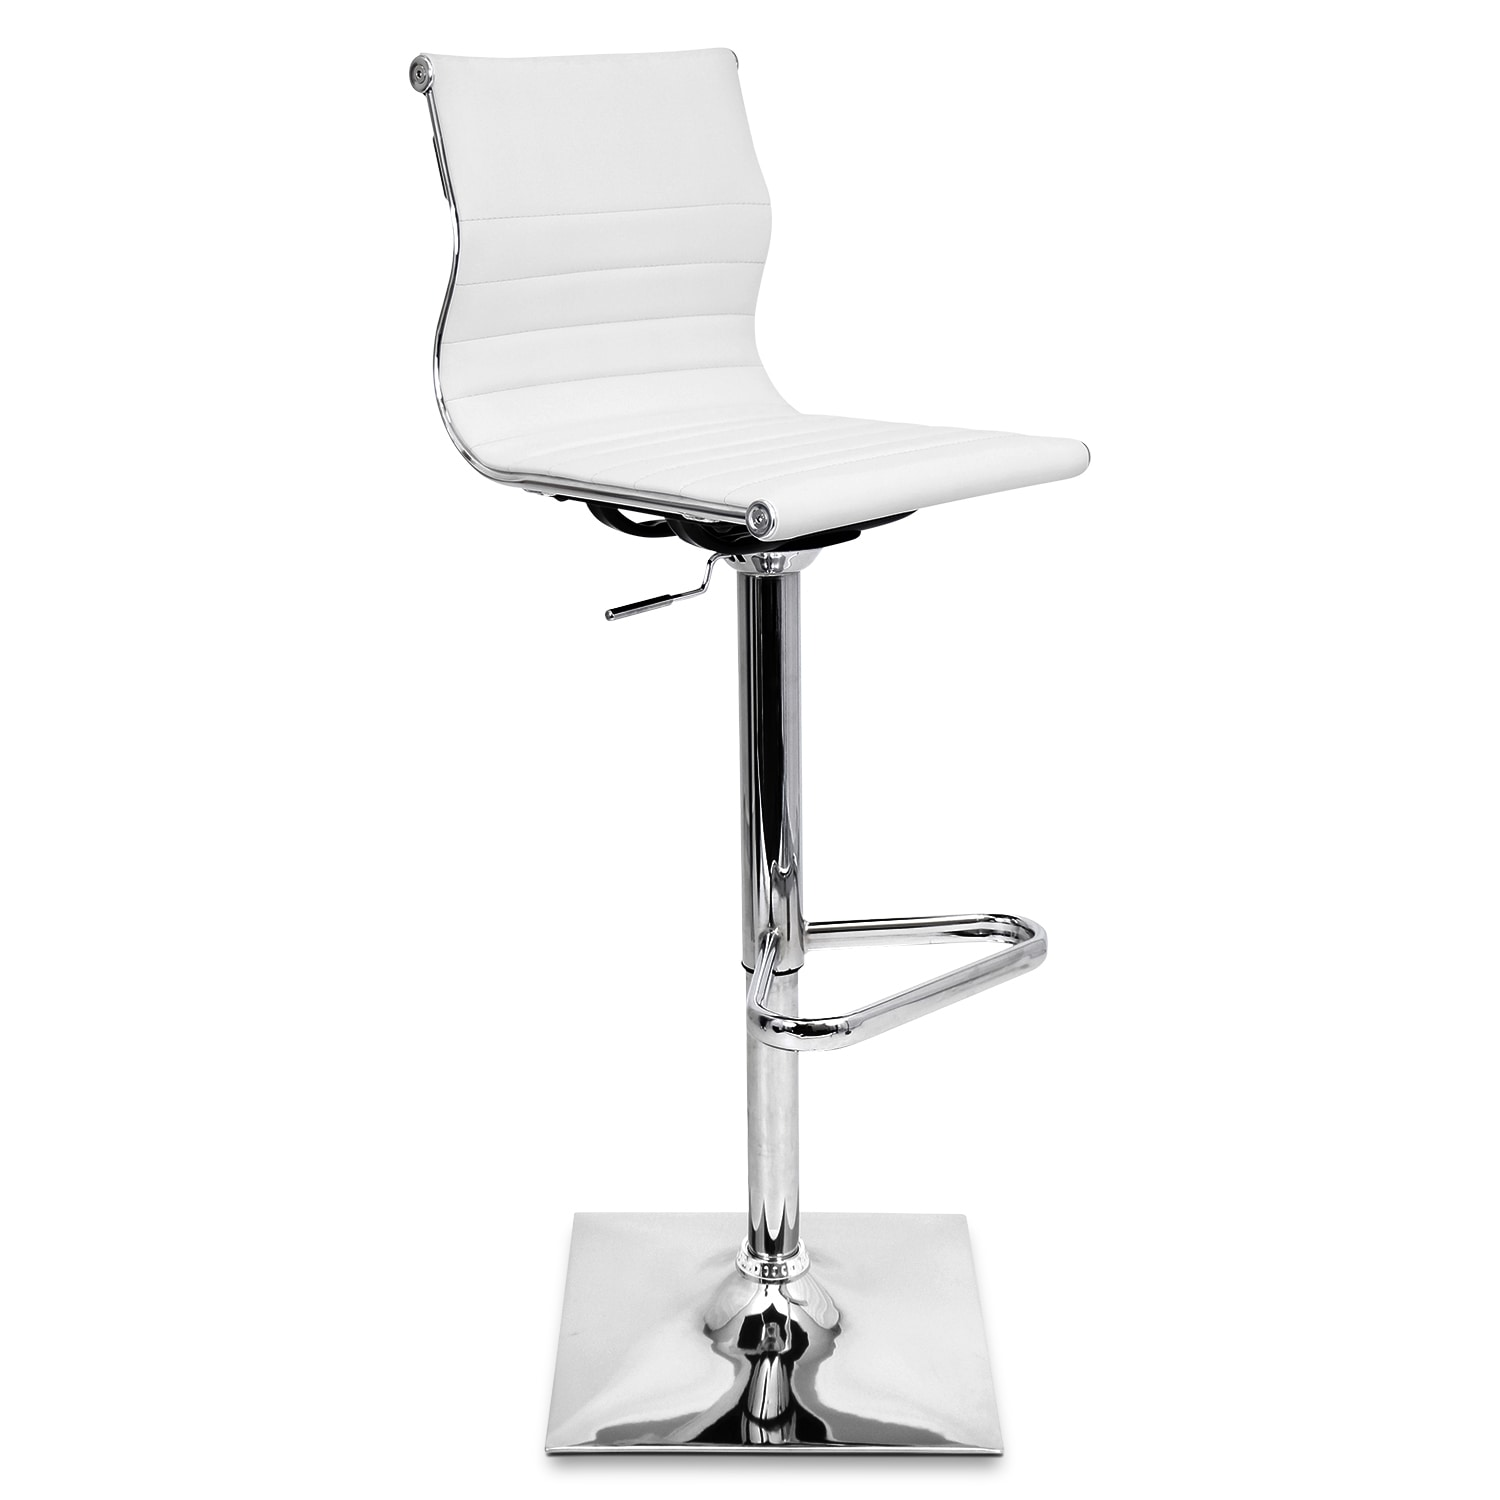 Pierce Adjustable Barstool - White